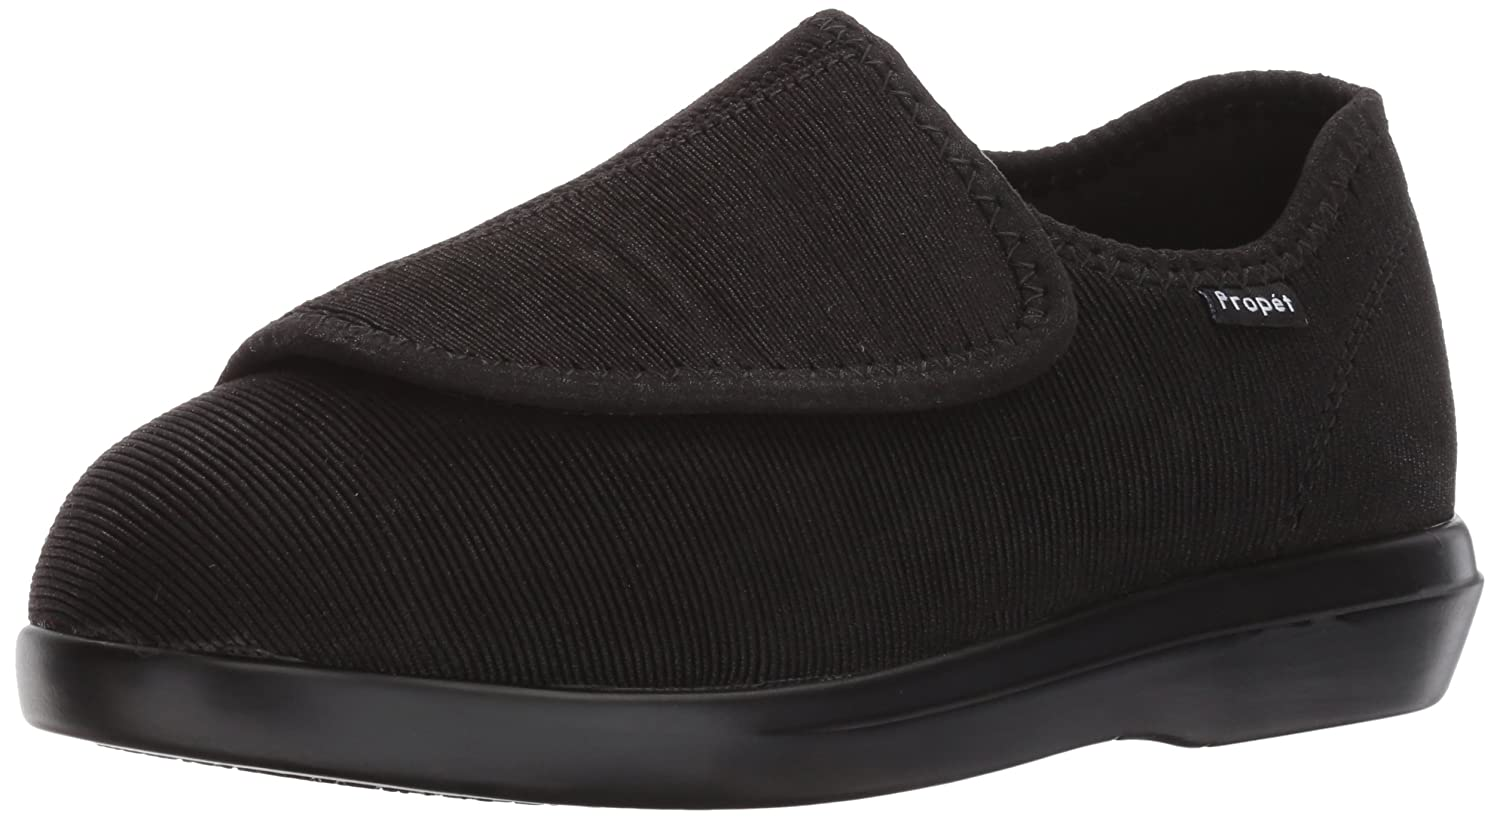 Propét Women's Cush N Foot Slipper B01NADQCDI 8.5 2E US|Black Corduroy